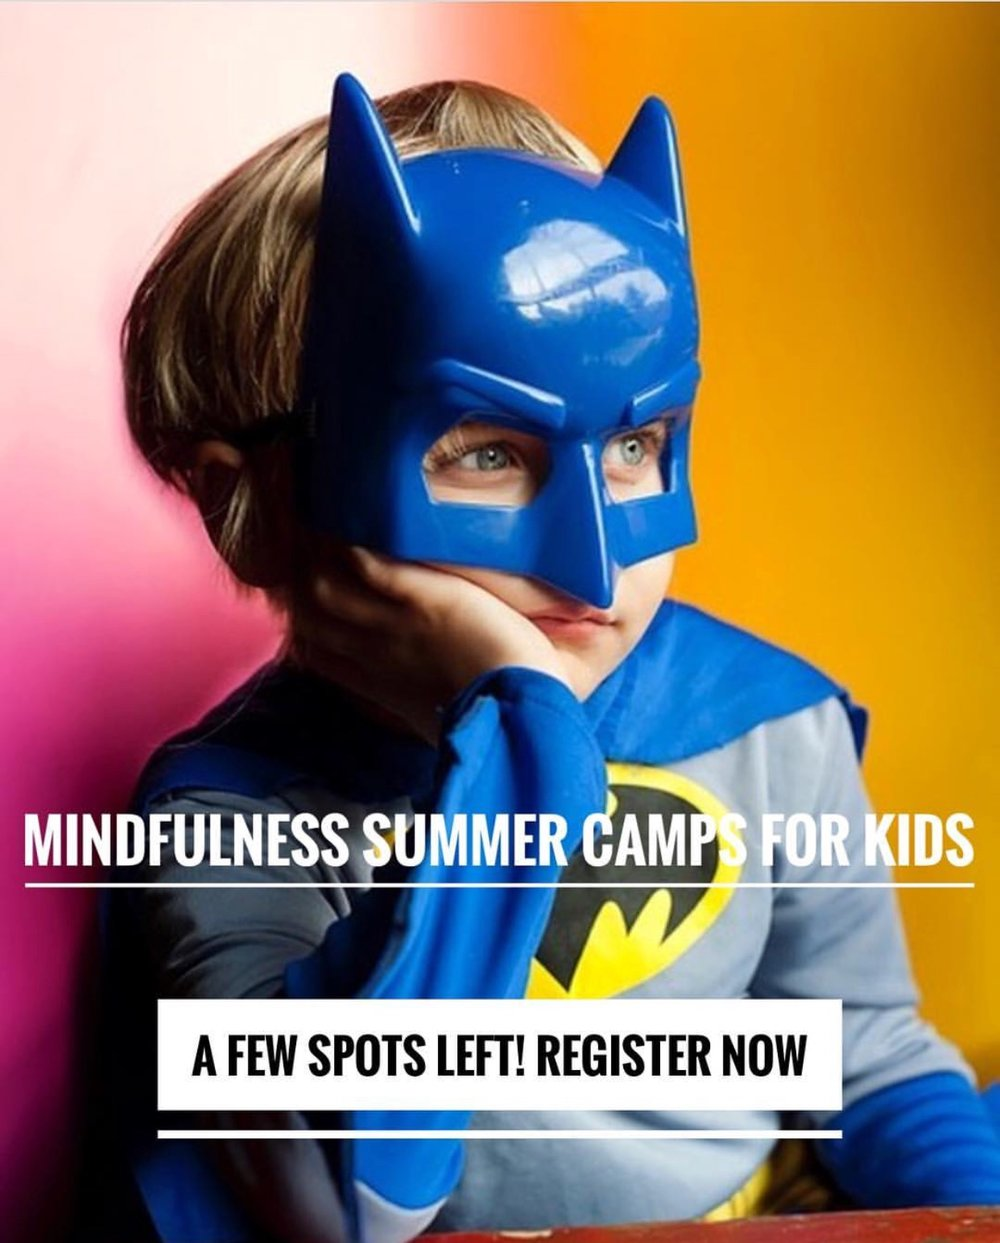 Beginning Mindfulness for Kids ages 5-10 (Inward Bound) - Wednesday, July 25th 1:00pm-4:00pmORFriday, July 27th 9:00am-12:00pmat Gathered and Grounded 533 W. Howard Ave. Decatur, GA**Carpool services are available from East Cobb/Marietta